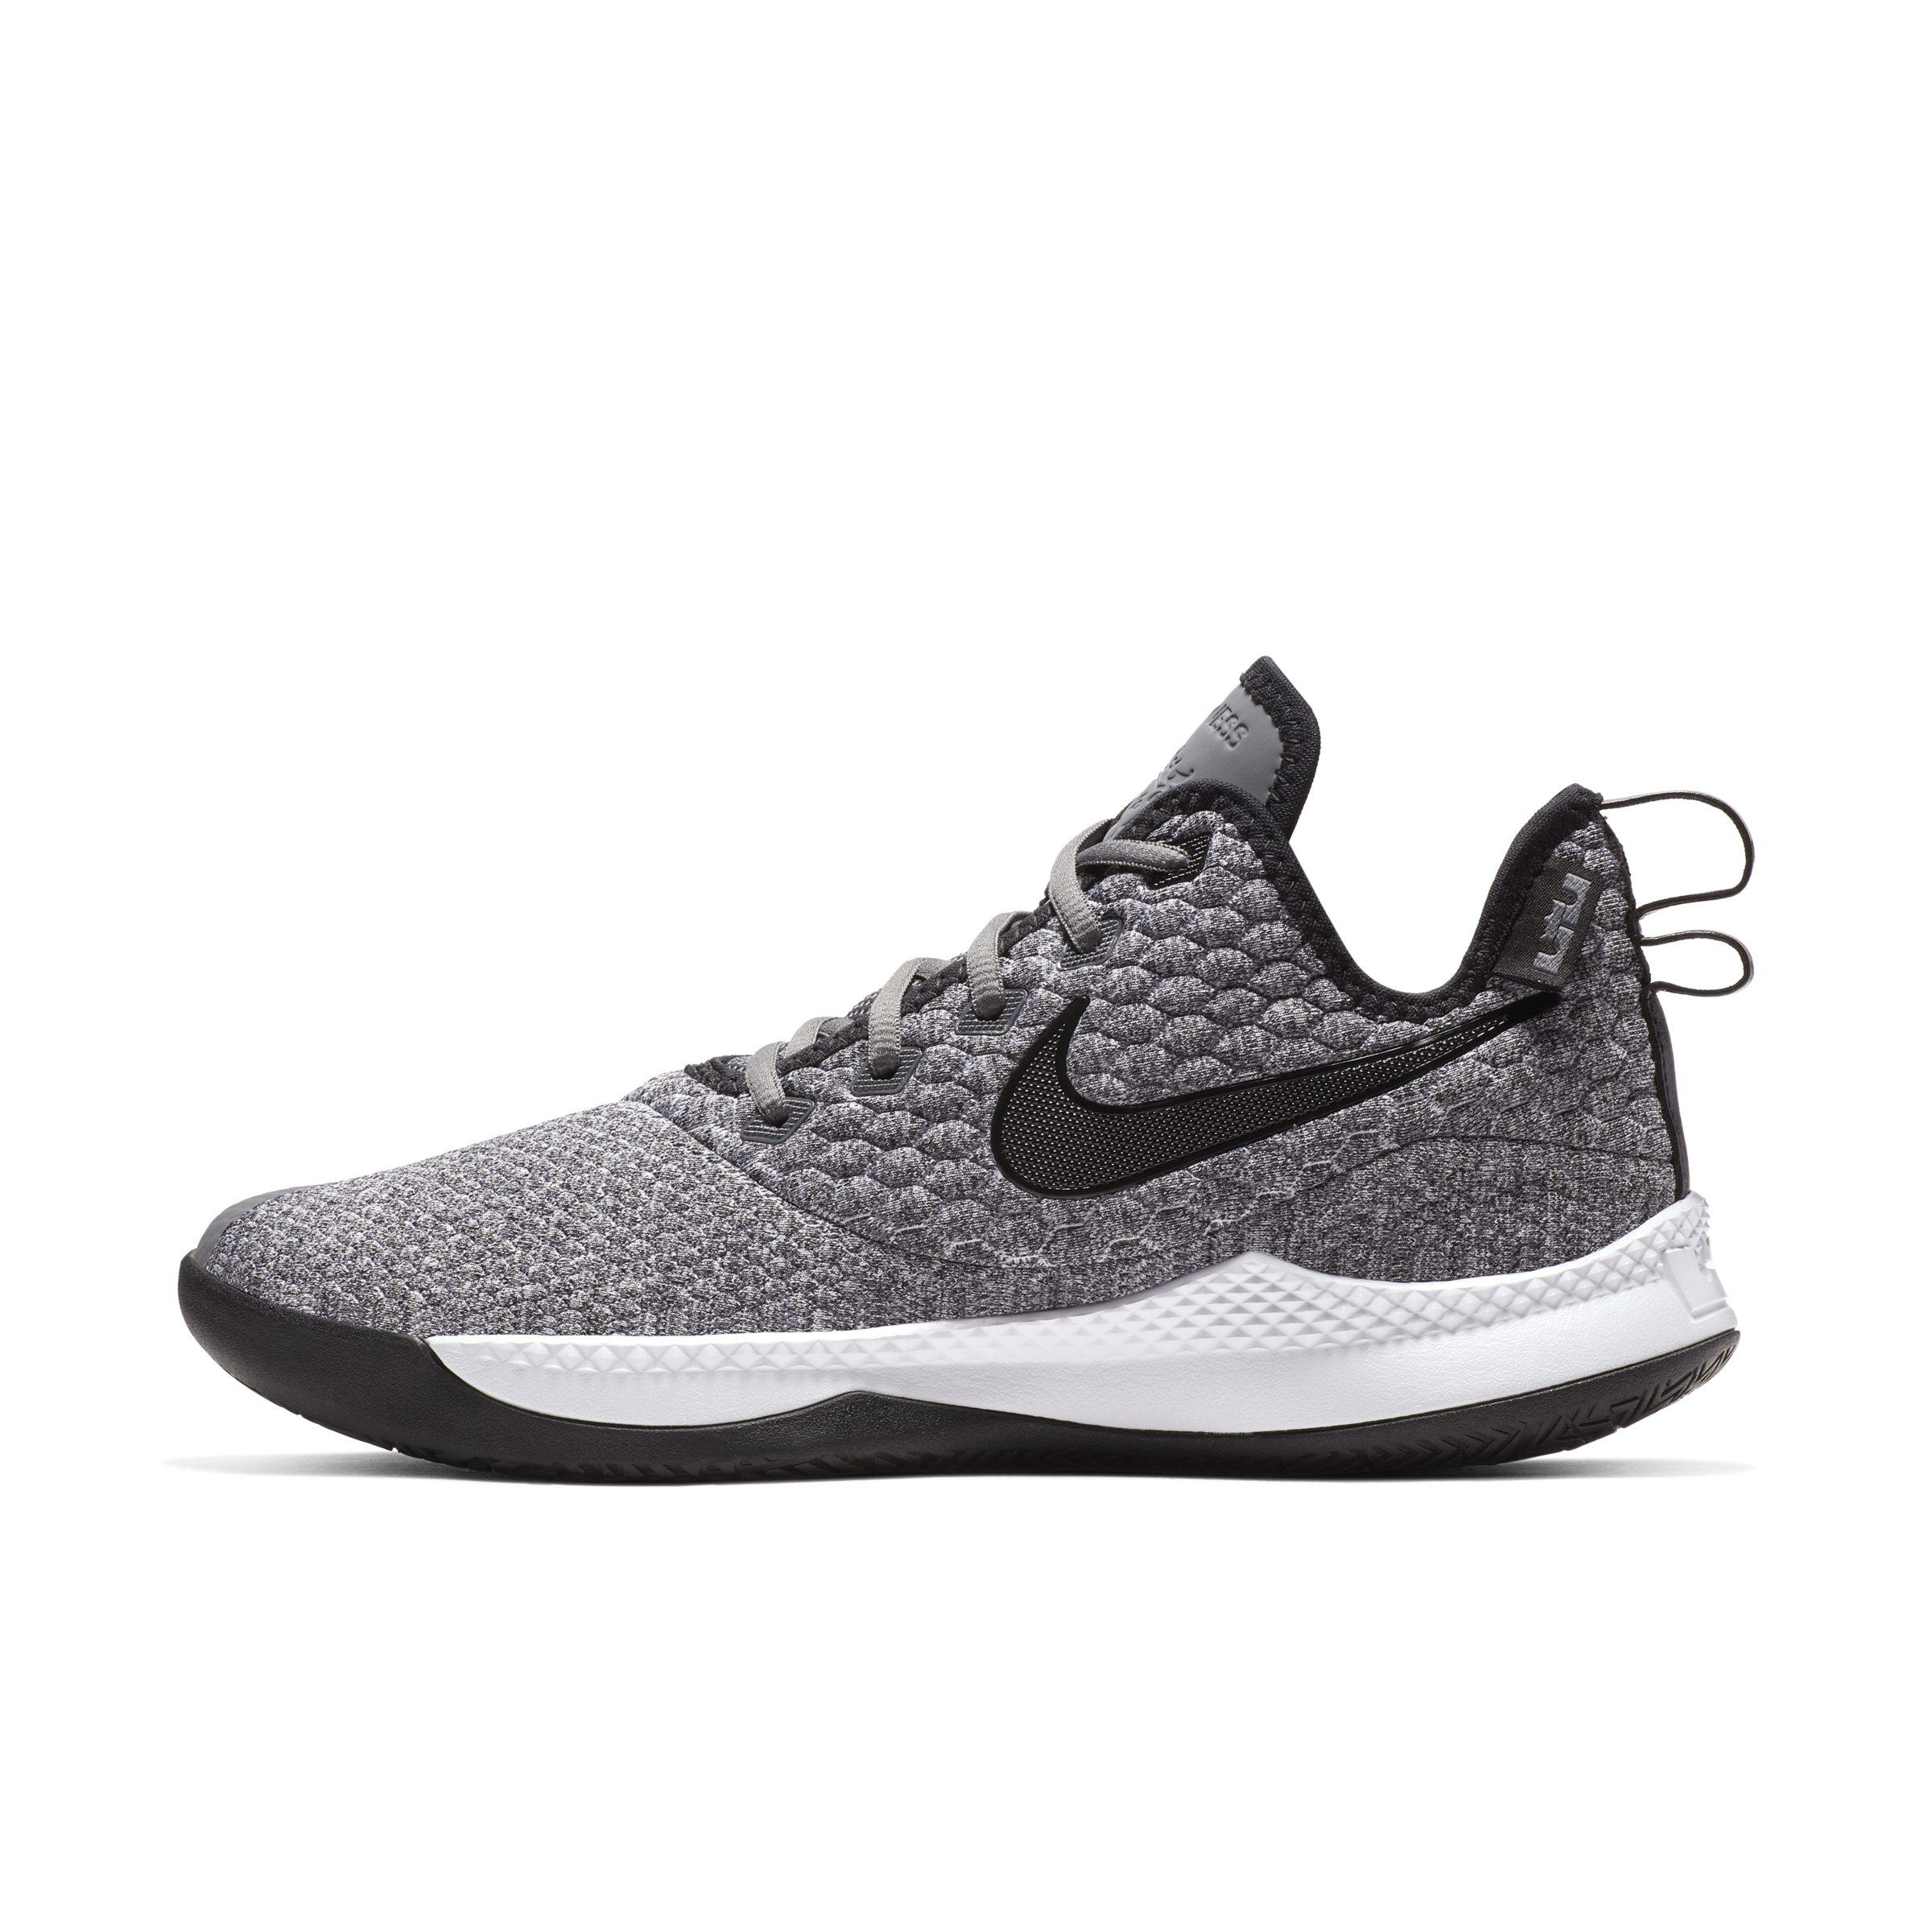 378addce0a8b Nike Lebron Witness Iii Basketball Shoes in Gray for Men - Lyst